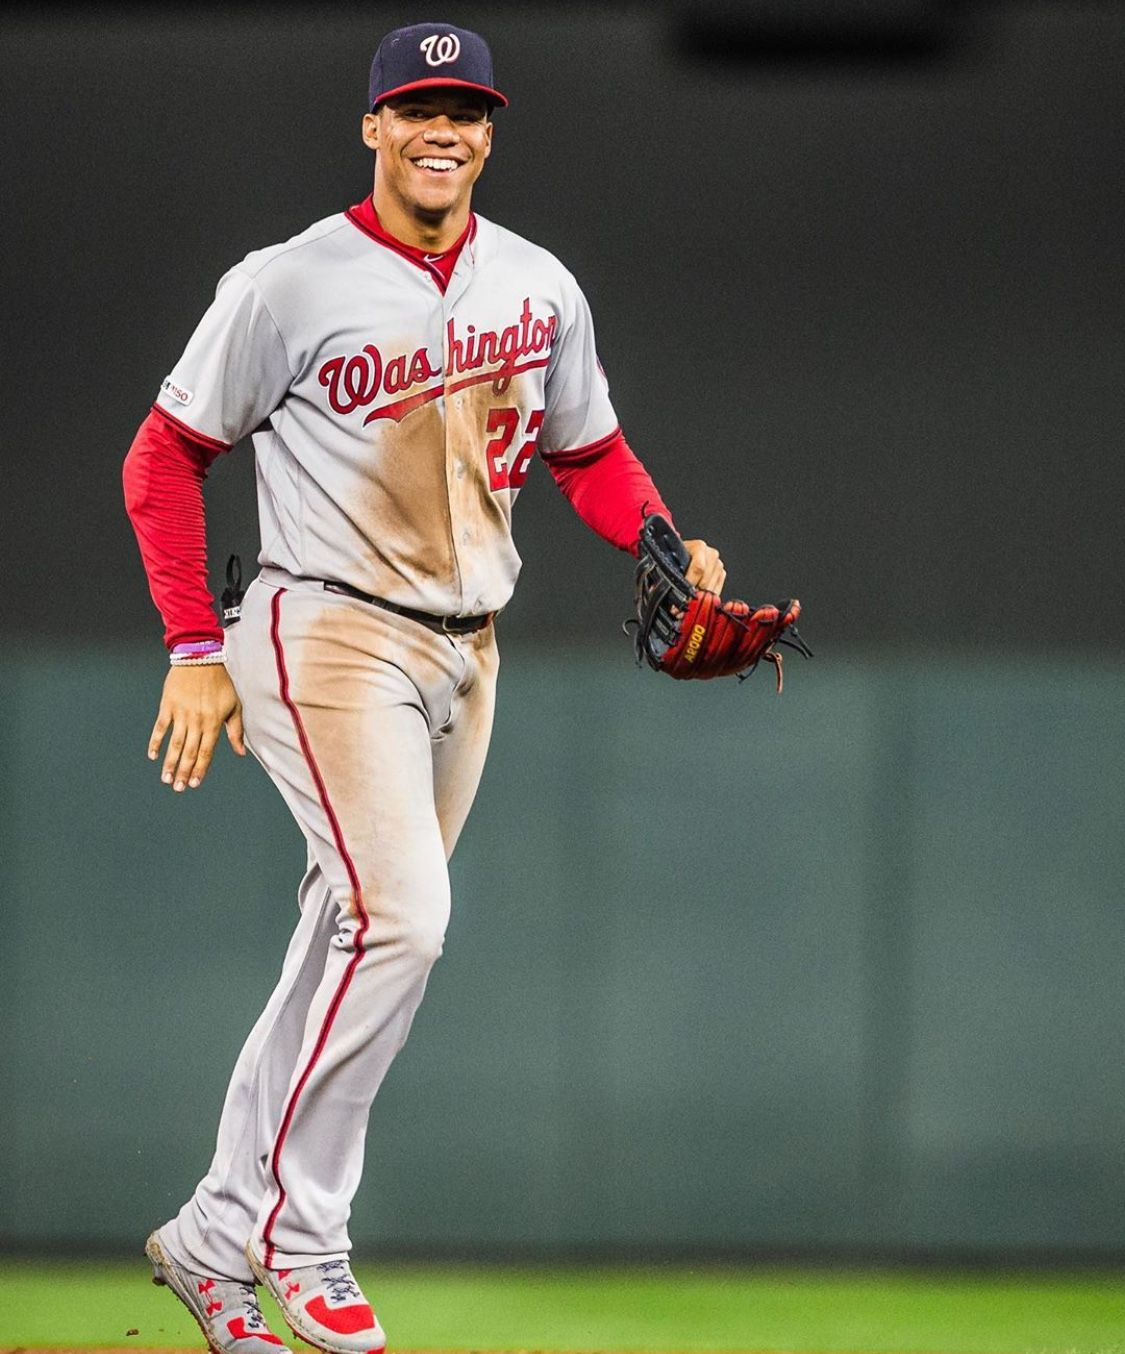 Pin By Frank Manuel On Jugadores De Beisbol In 2020 Soto Baseball Players Washington Nationals